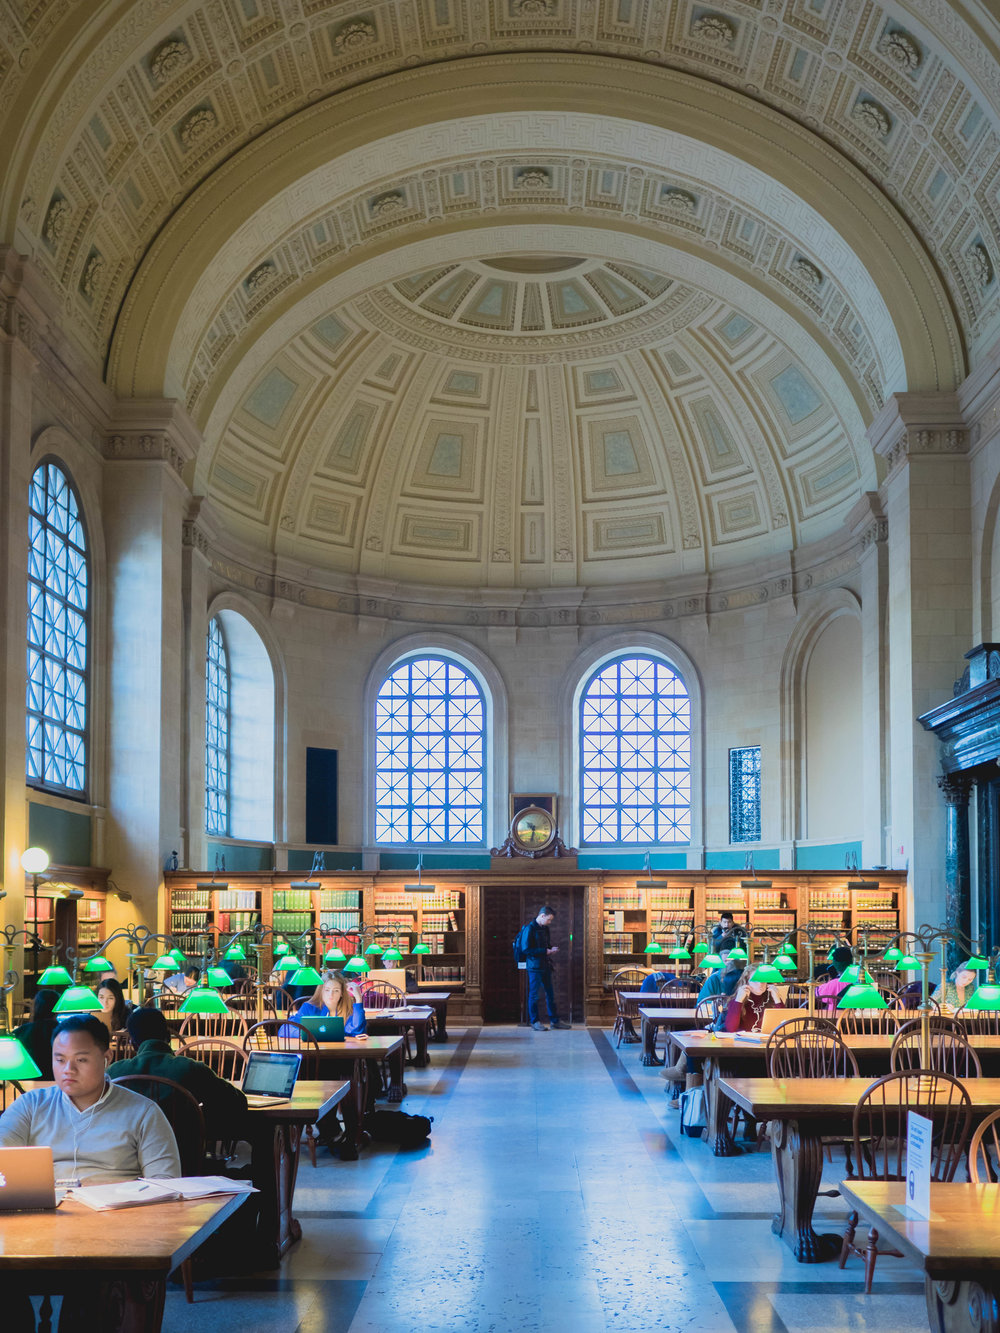 bates hall, boston public library.